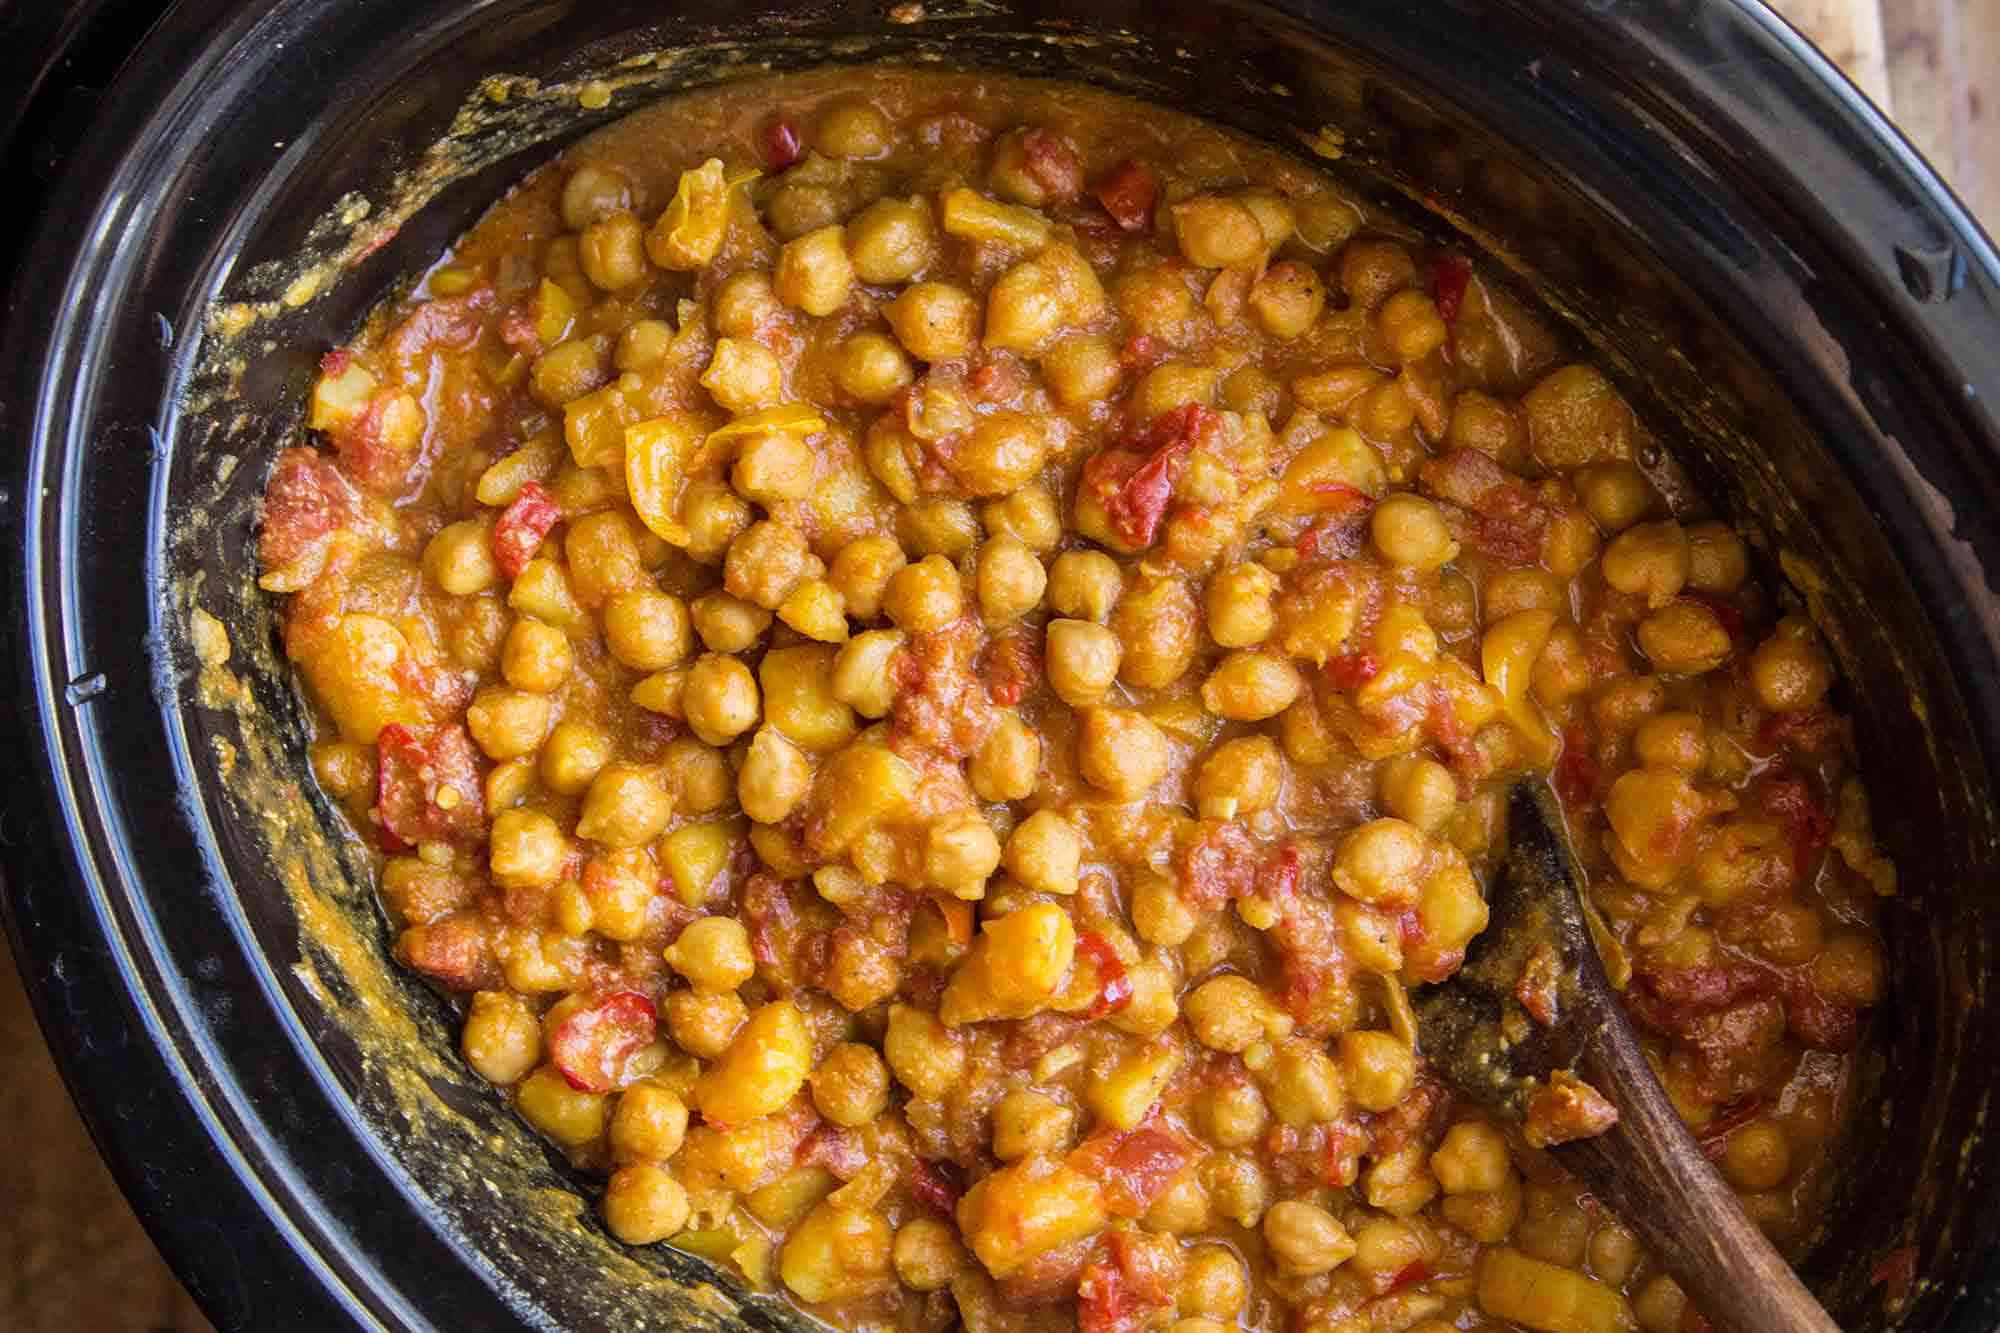 Crockpot chickpea curry after cooking